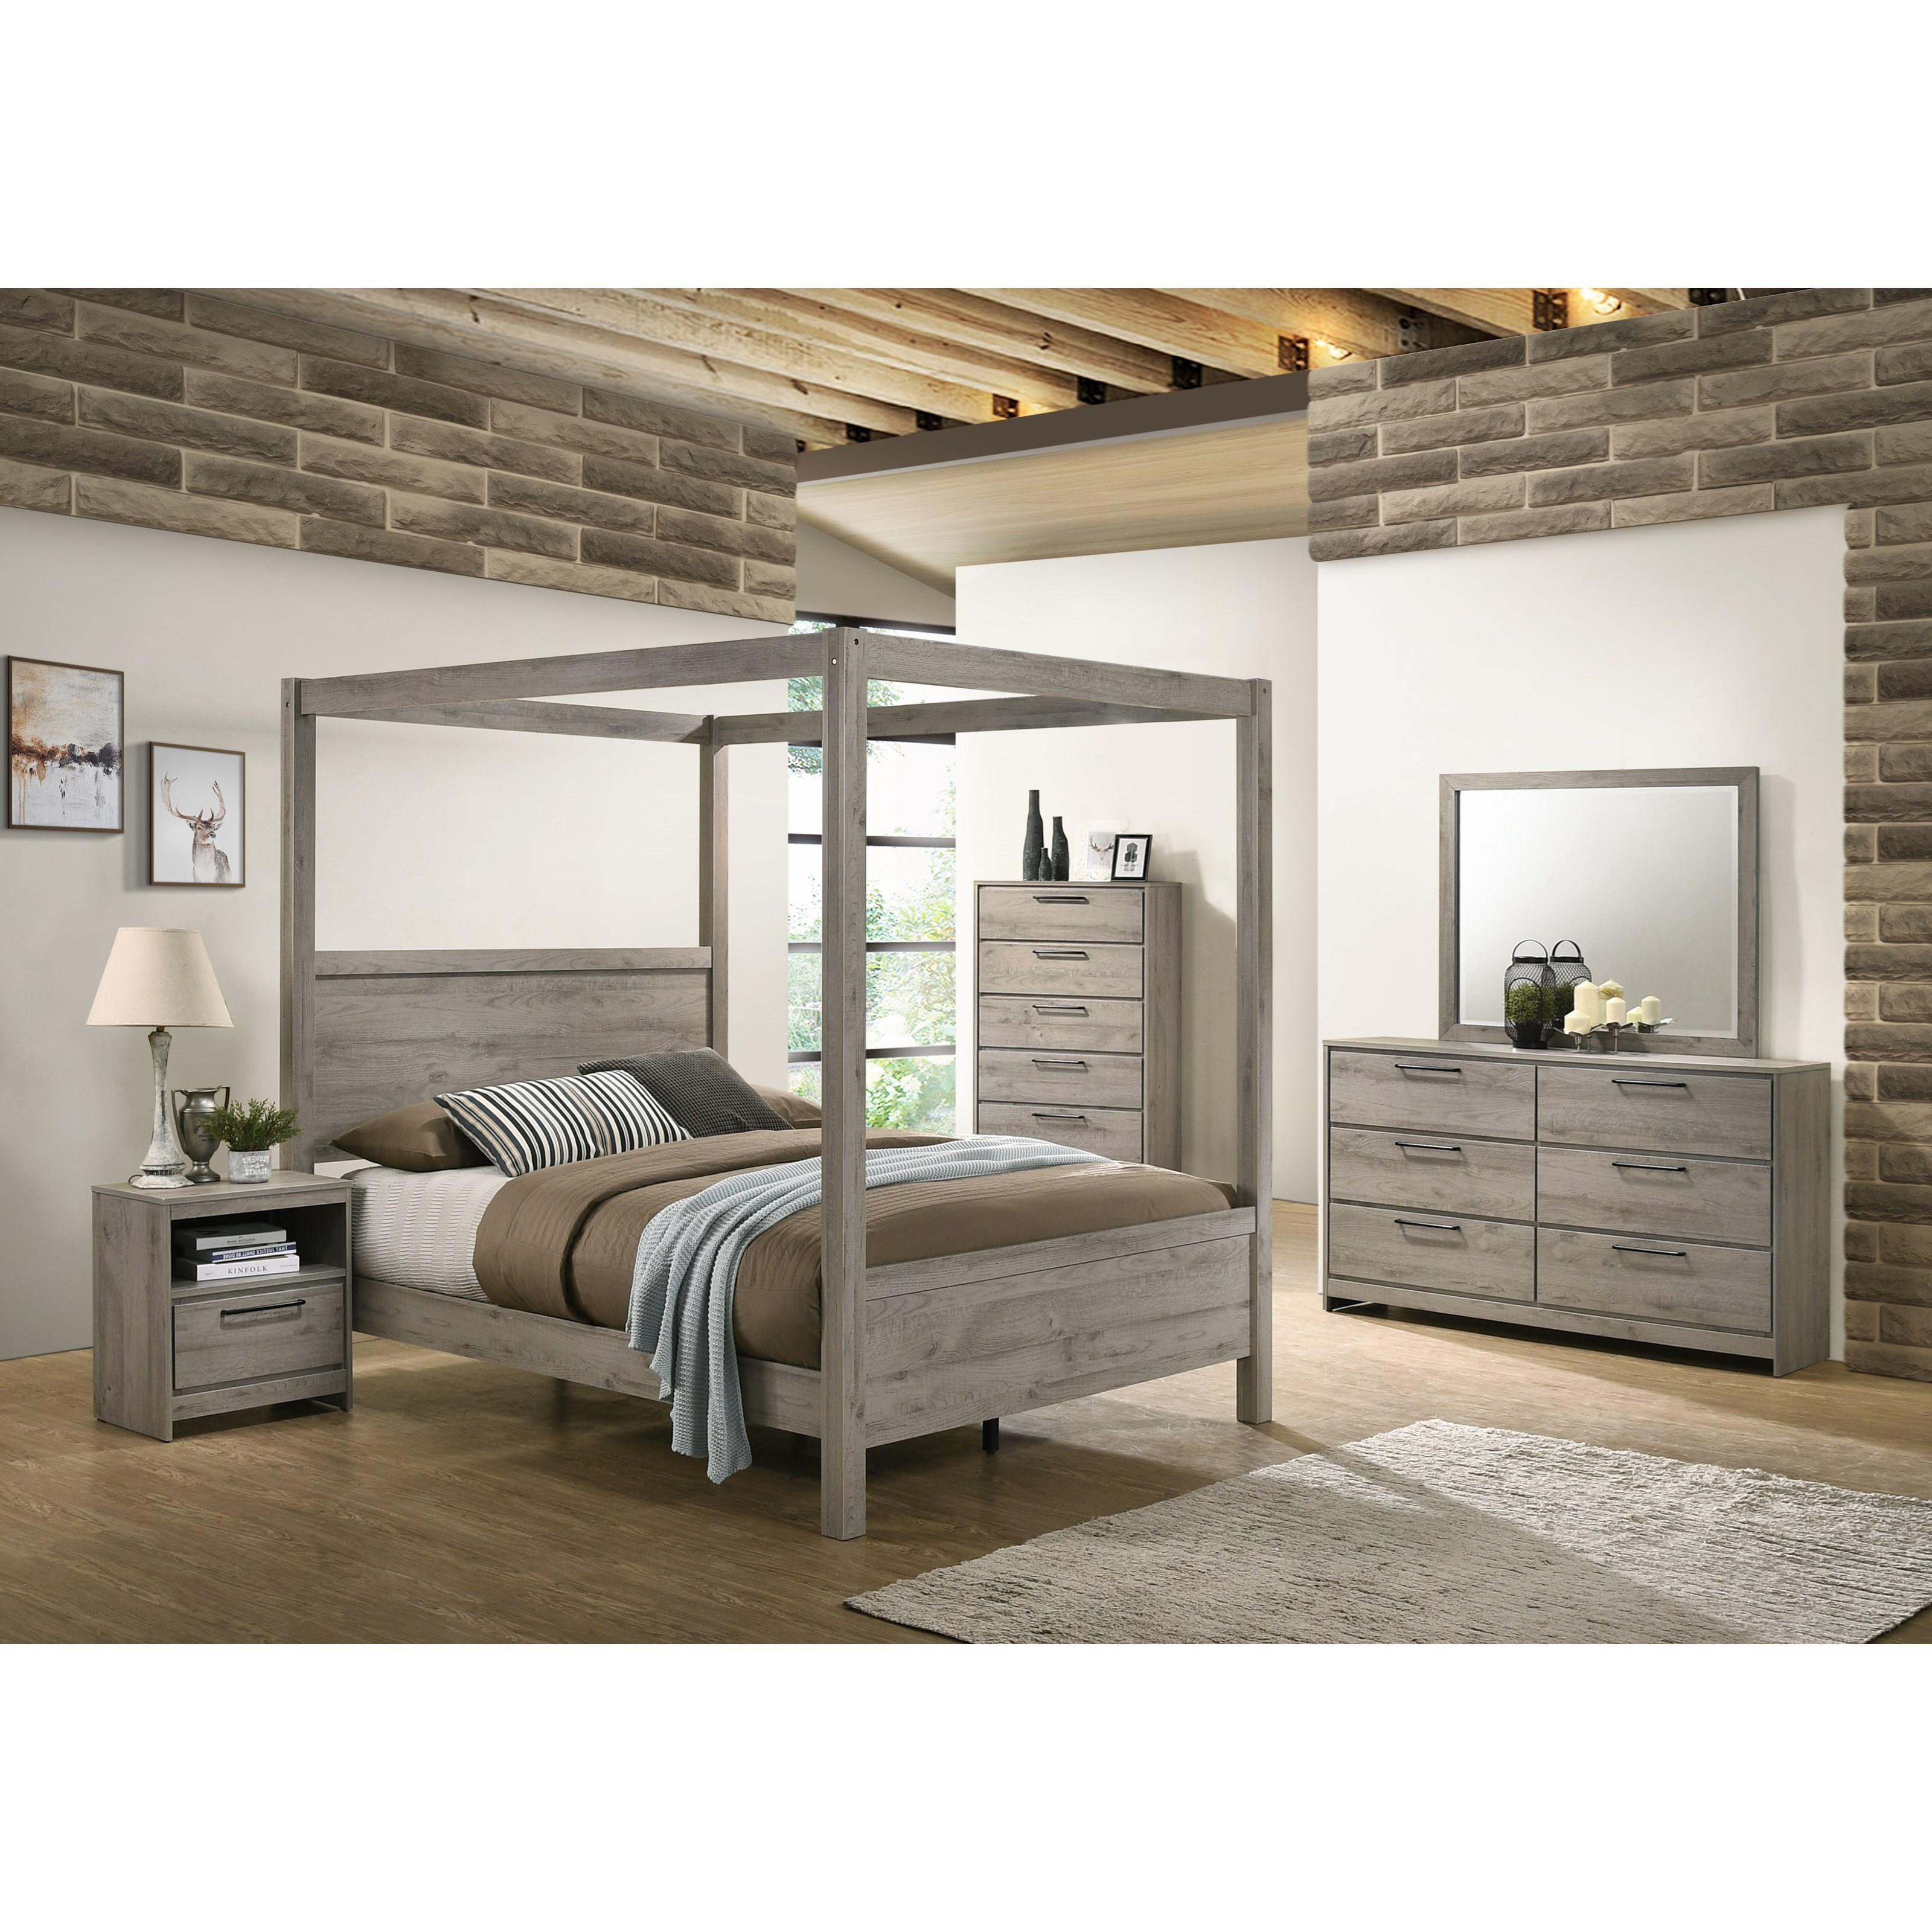 Alix Twin Bedroom Group by Standard Furniture at Beds N Stuff